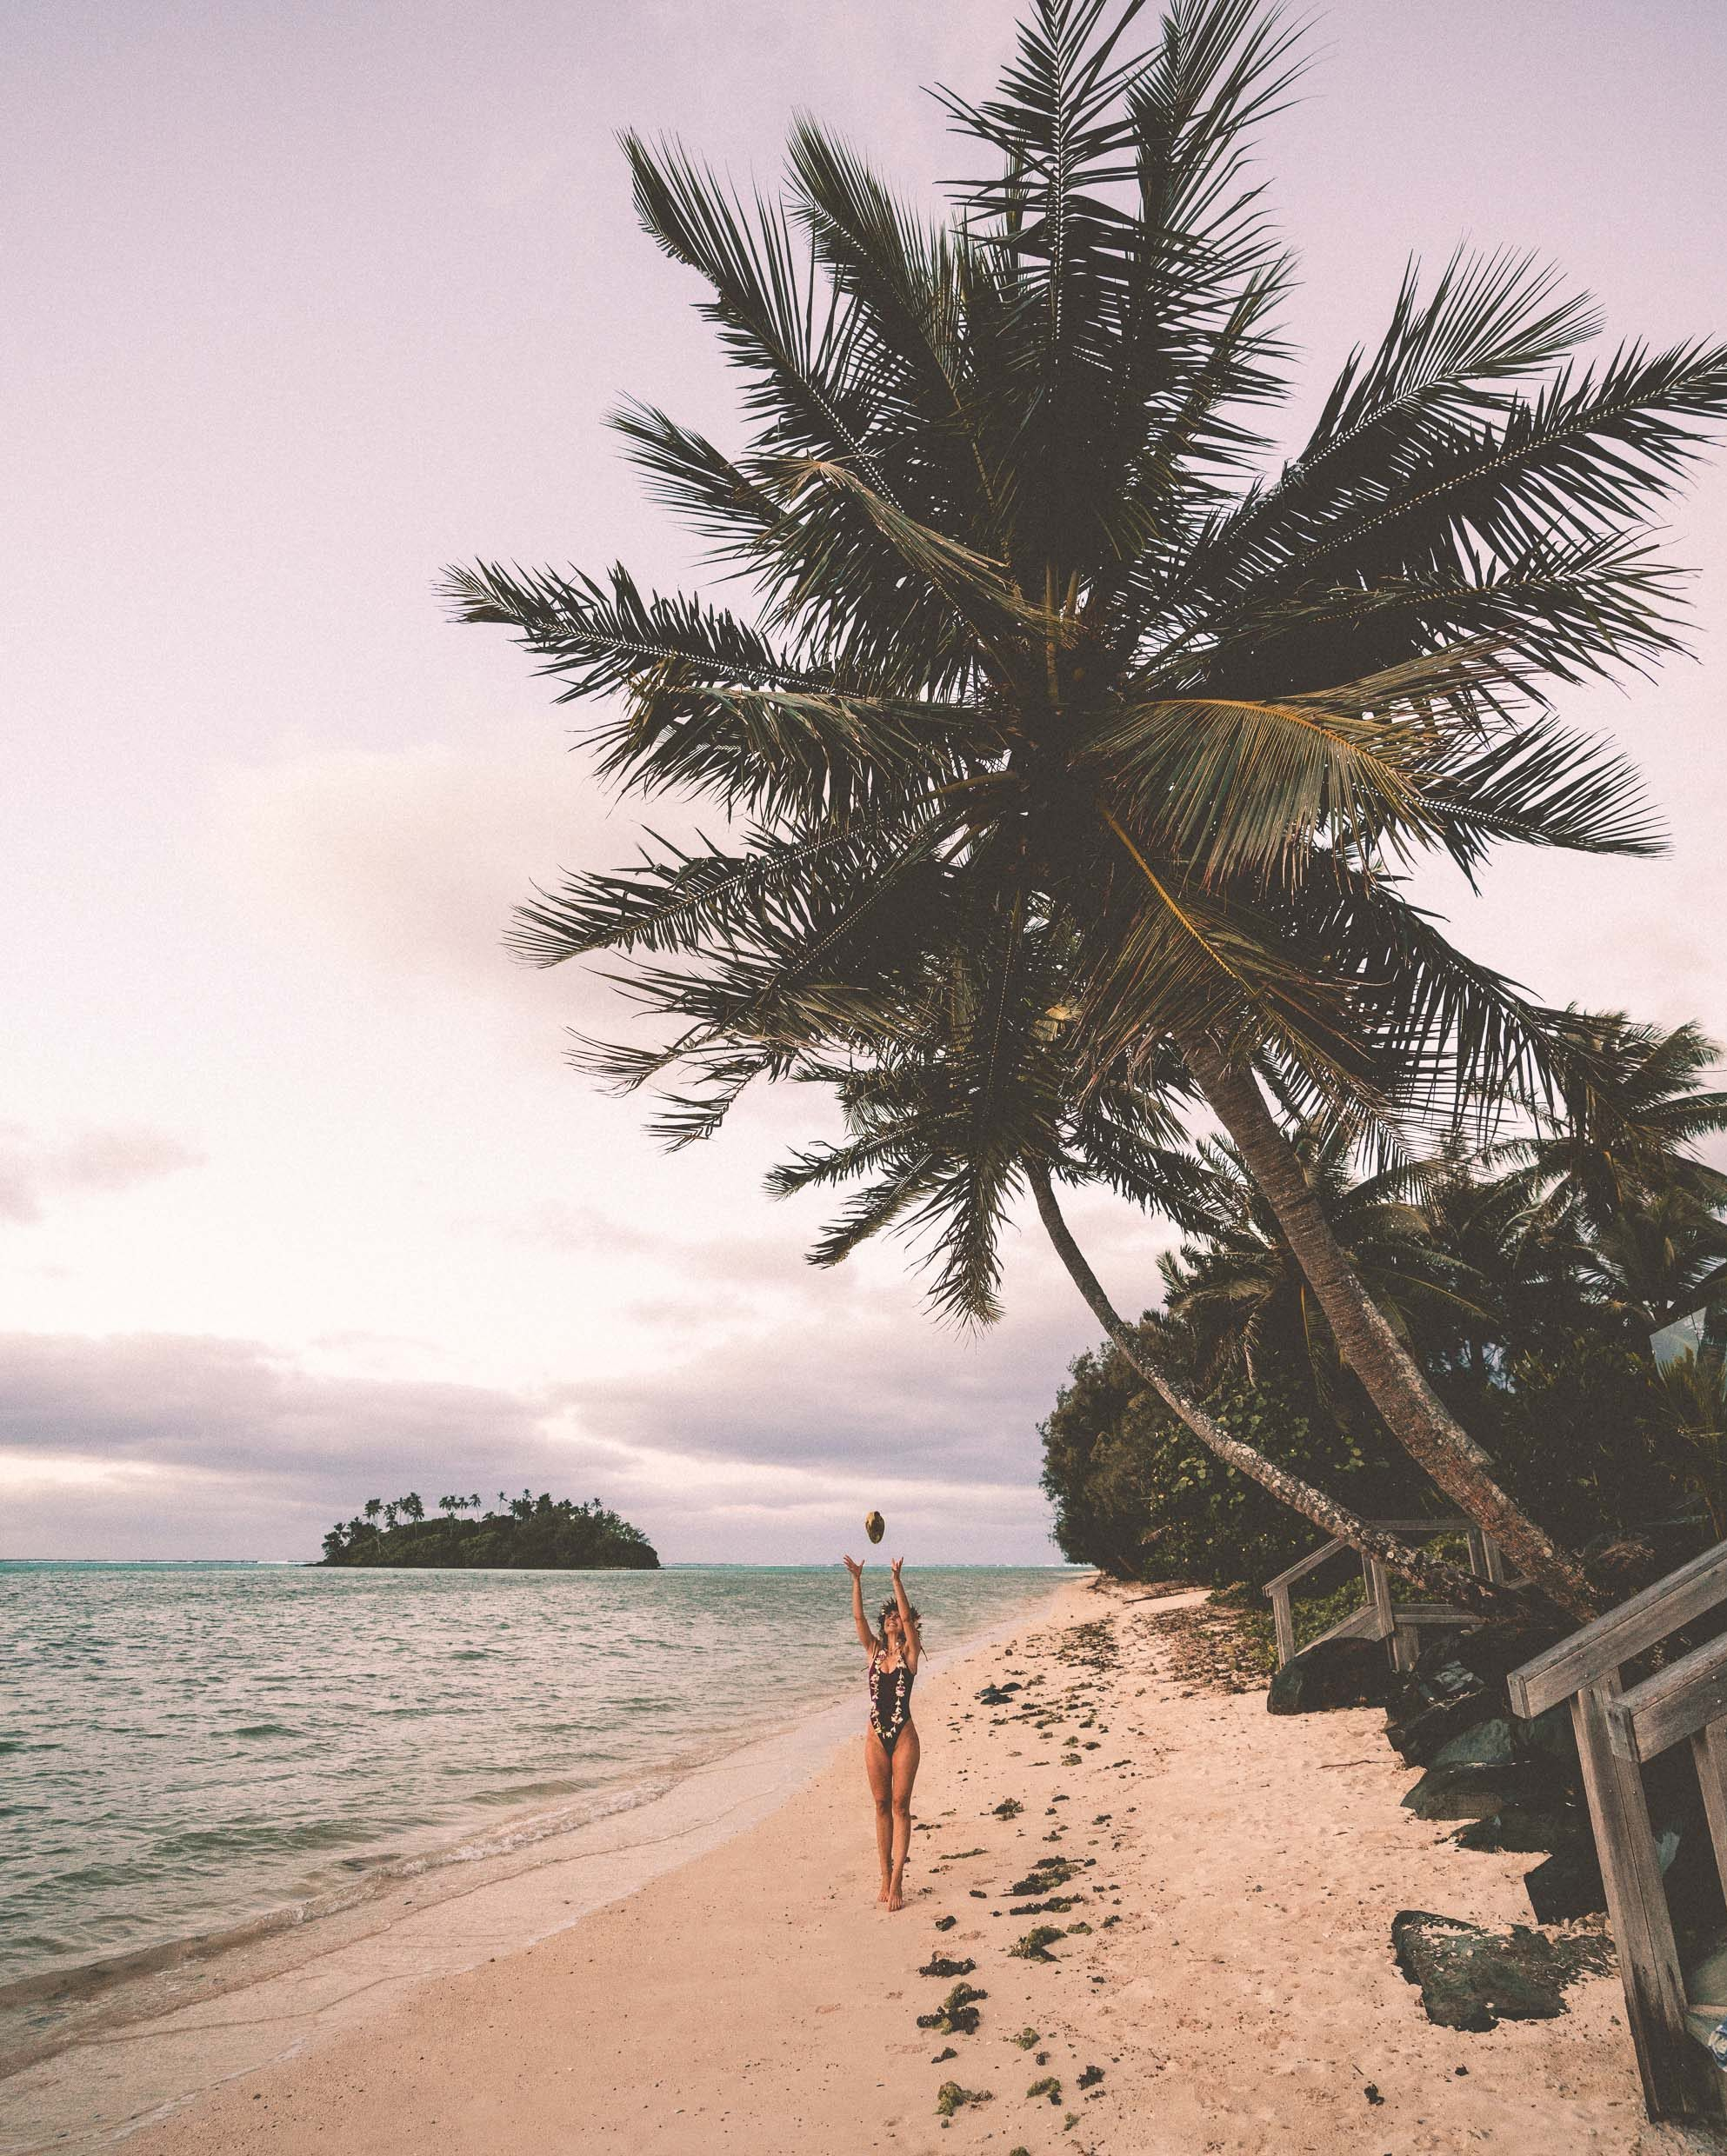 Pastel sunrise and coconuts on the beach in Rarotonga, Cook Islands